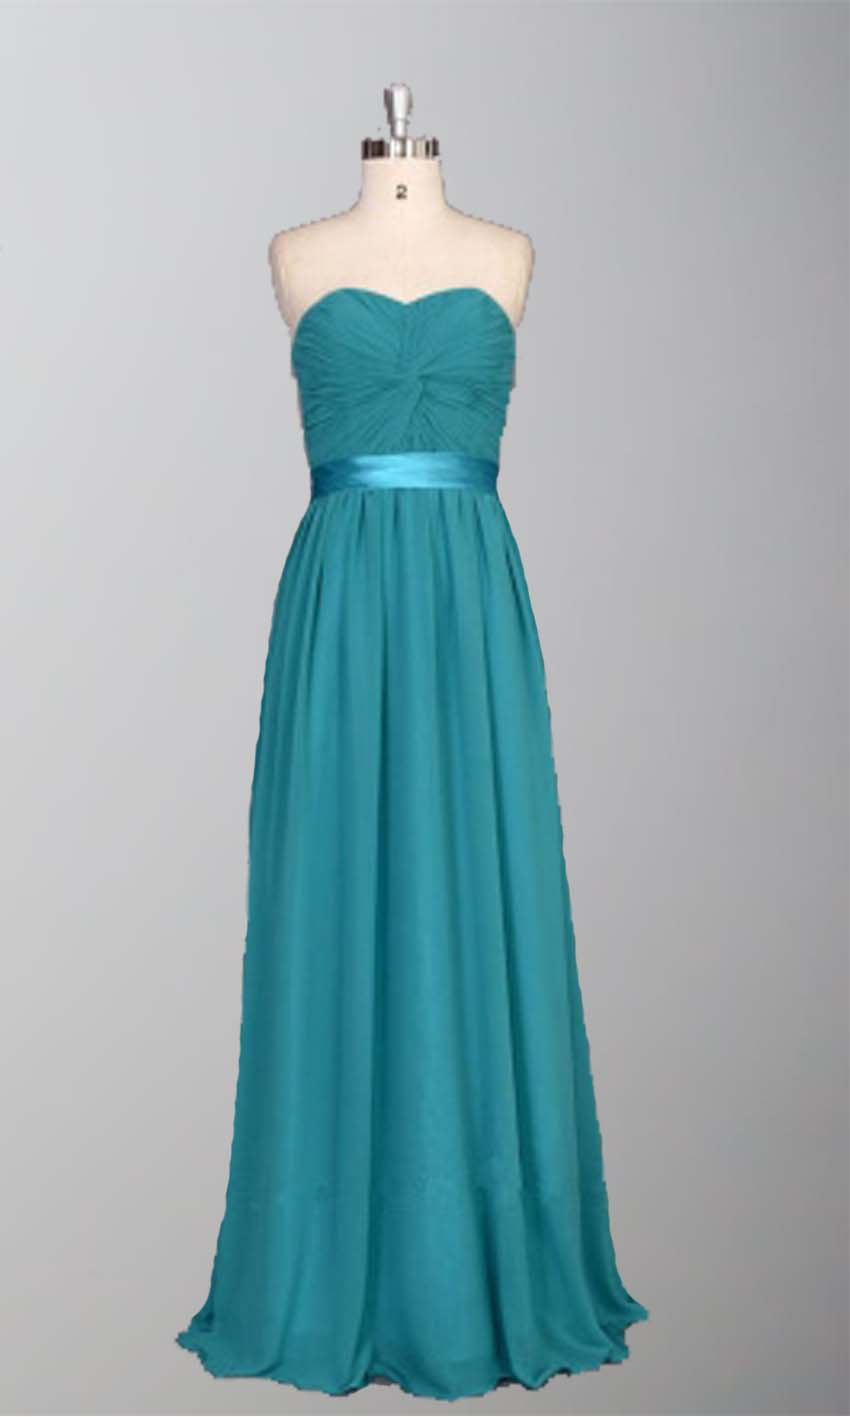 £85.00 : cheap prom dresses uk, bridesmaid dresses, 2014 prom & evening dresses, look for cheap elegant prom dresses 2014, cocktail gowns, or dresses for special occasions? kissprom.co.uk offers various bridesmaid dresses, evening dress, free shipping to uk etc.